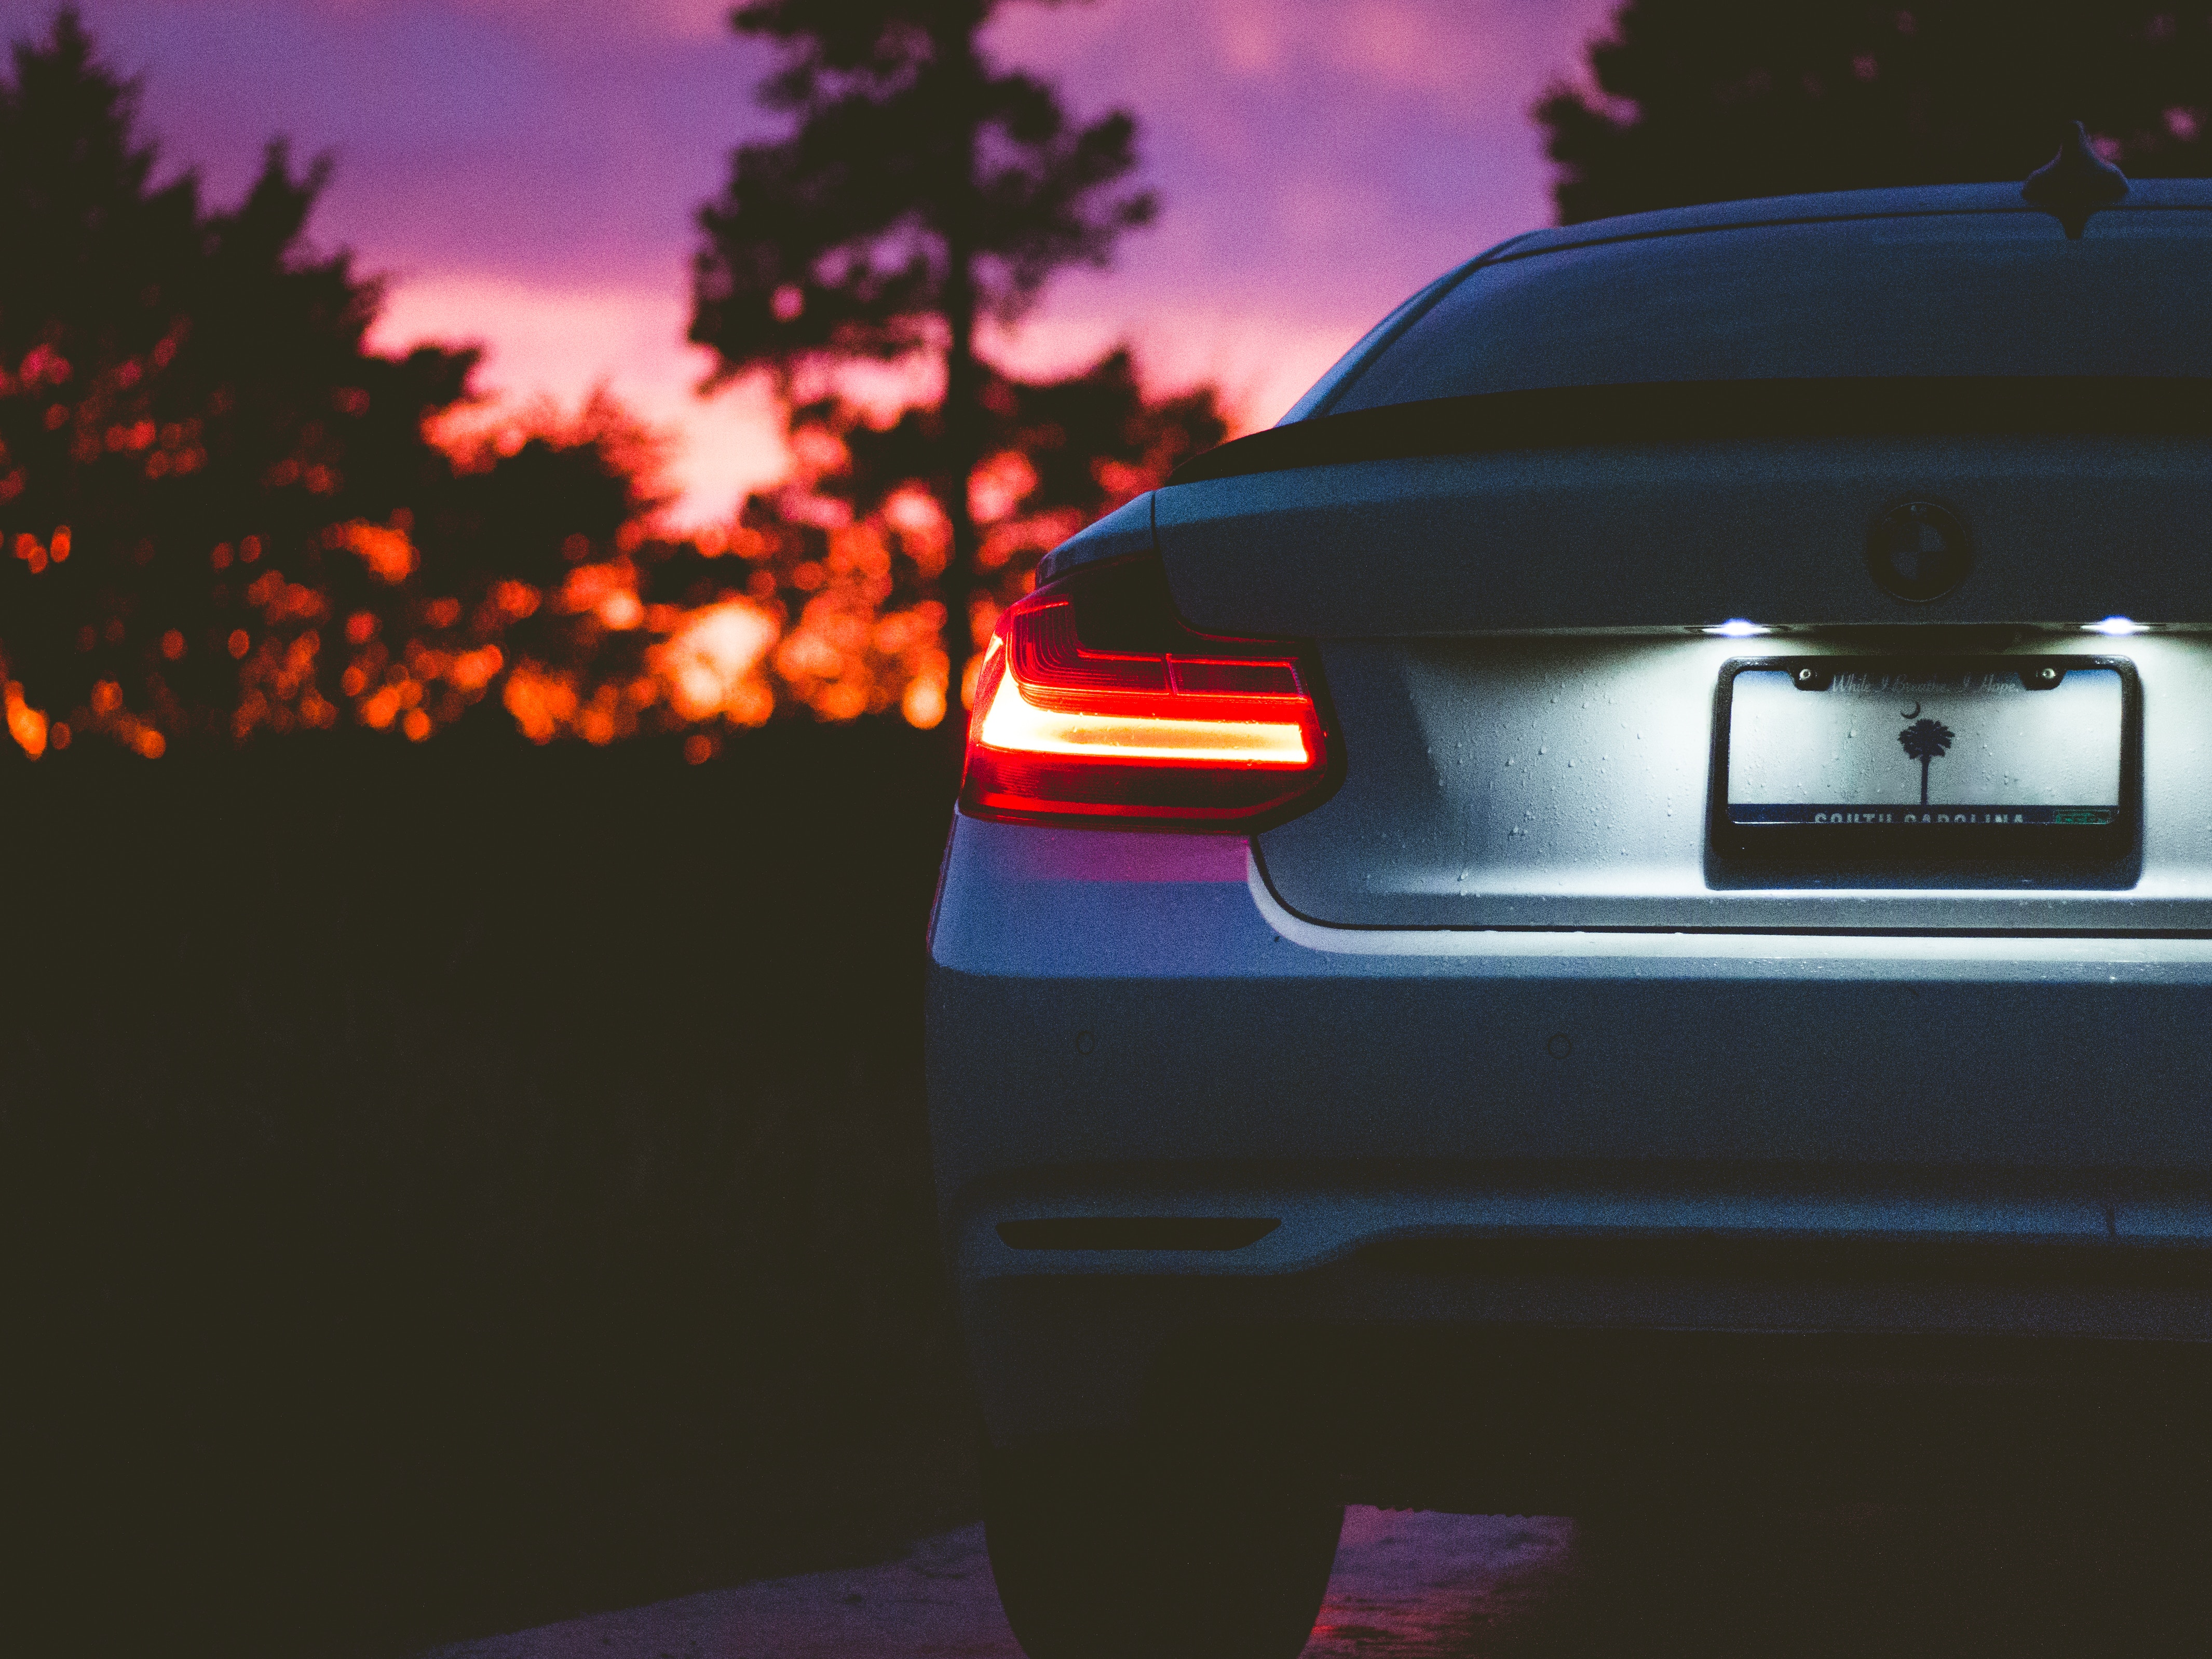 130583 download wallpaper Cars, Bmw, Back View, Rear View, Headlight, Sunset, Shine, Light screensavers and pictures for free